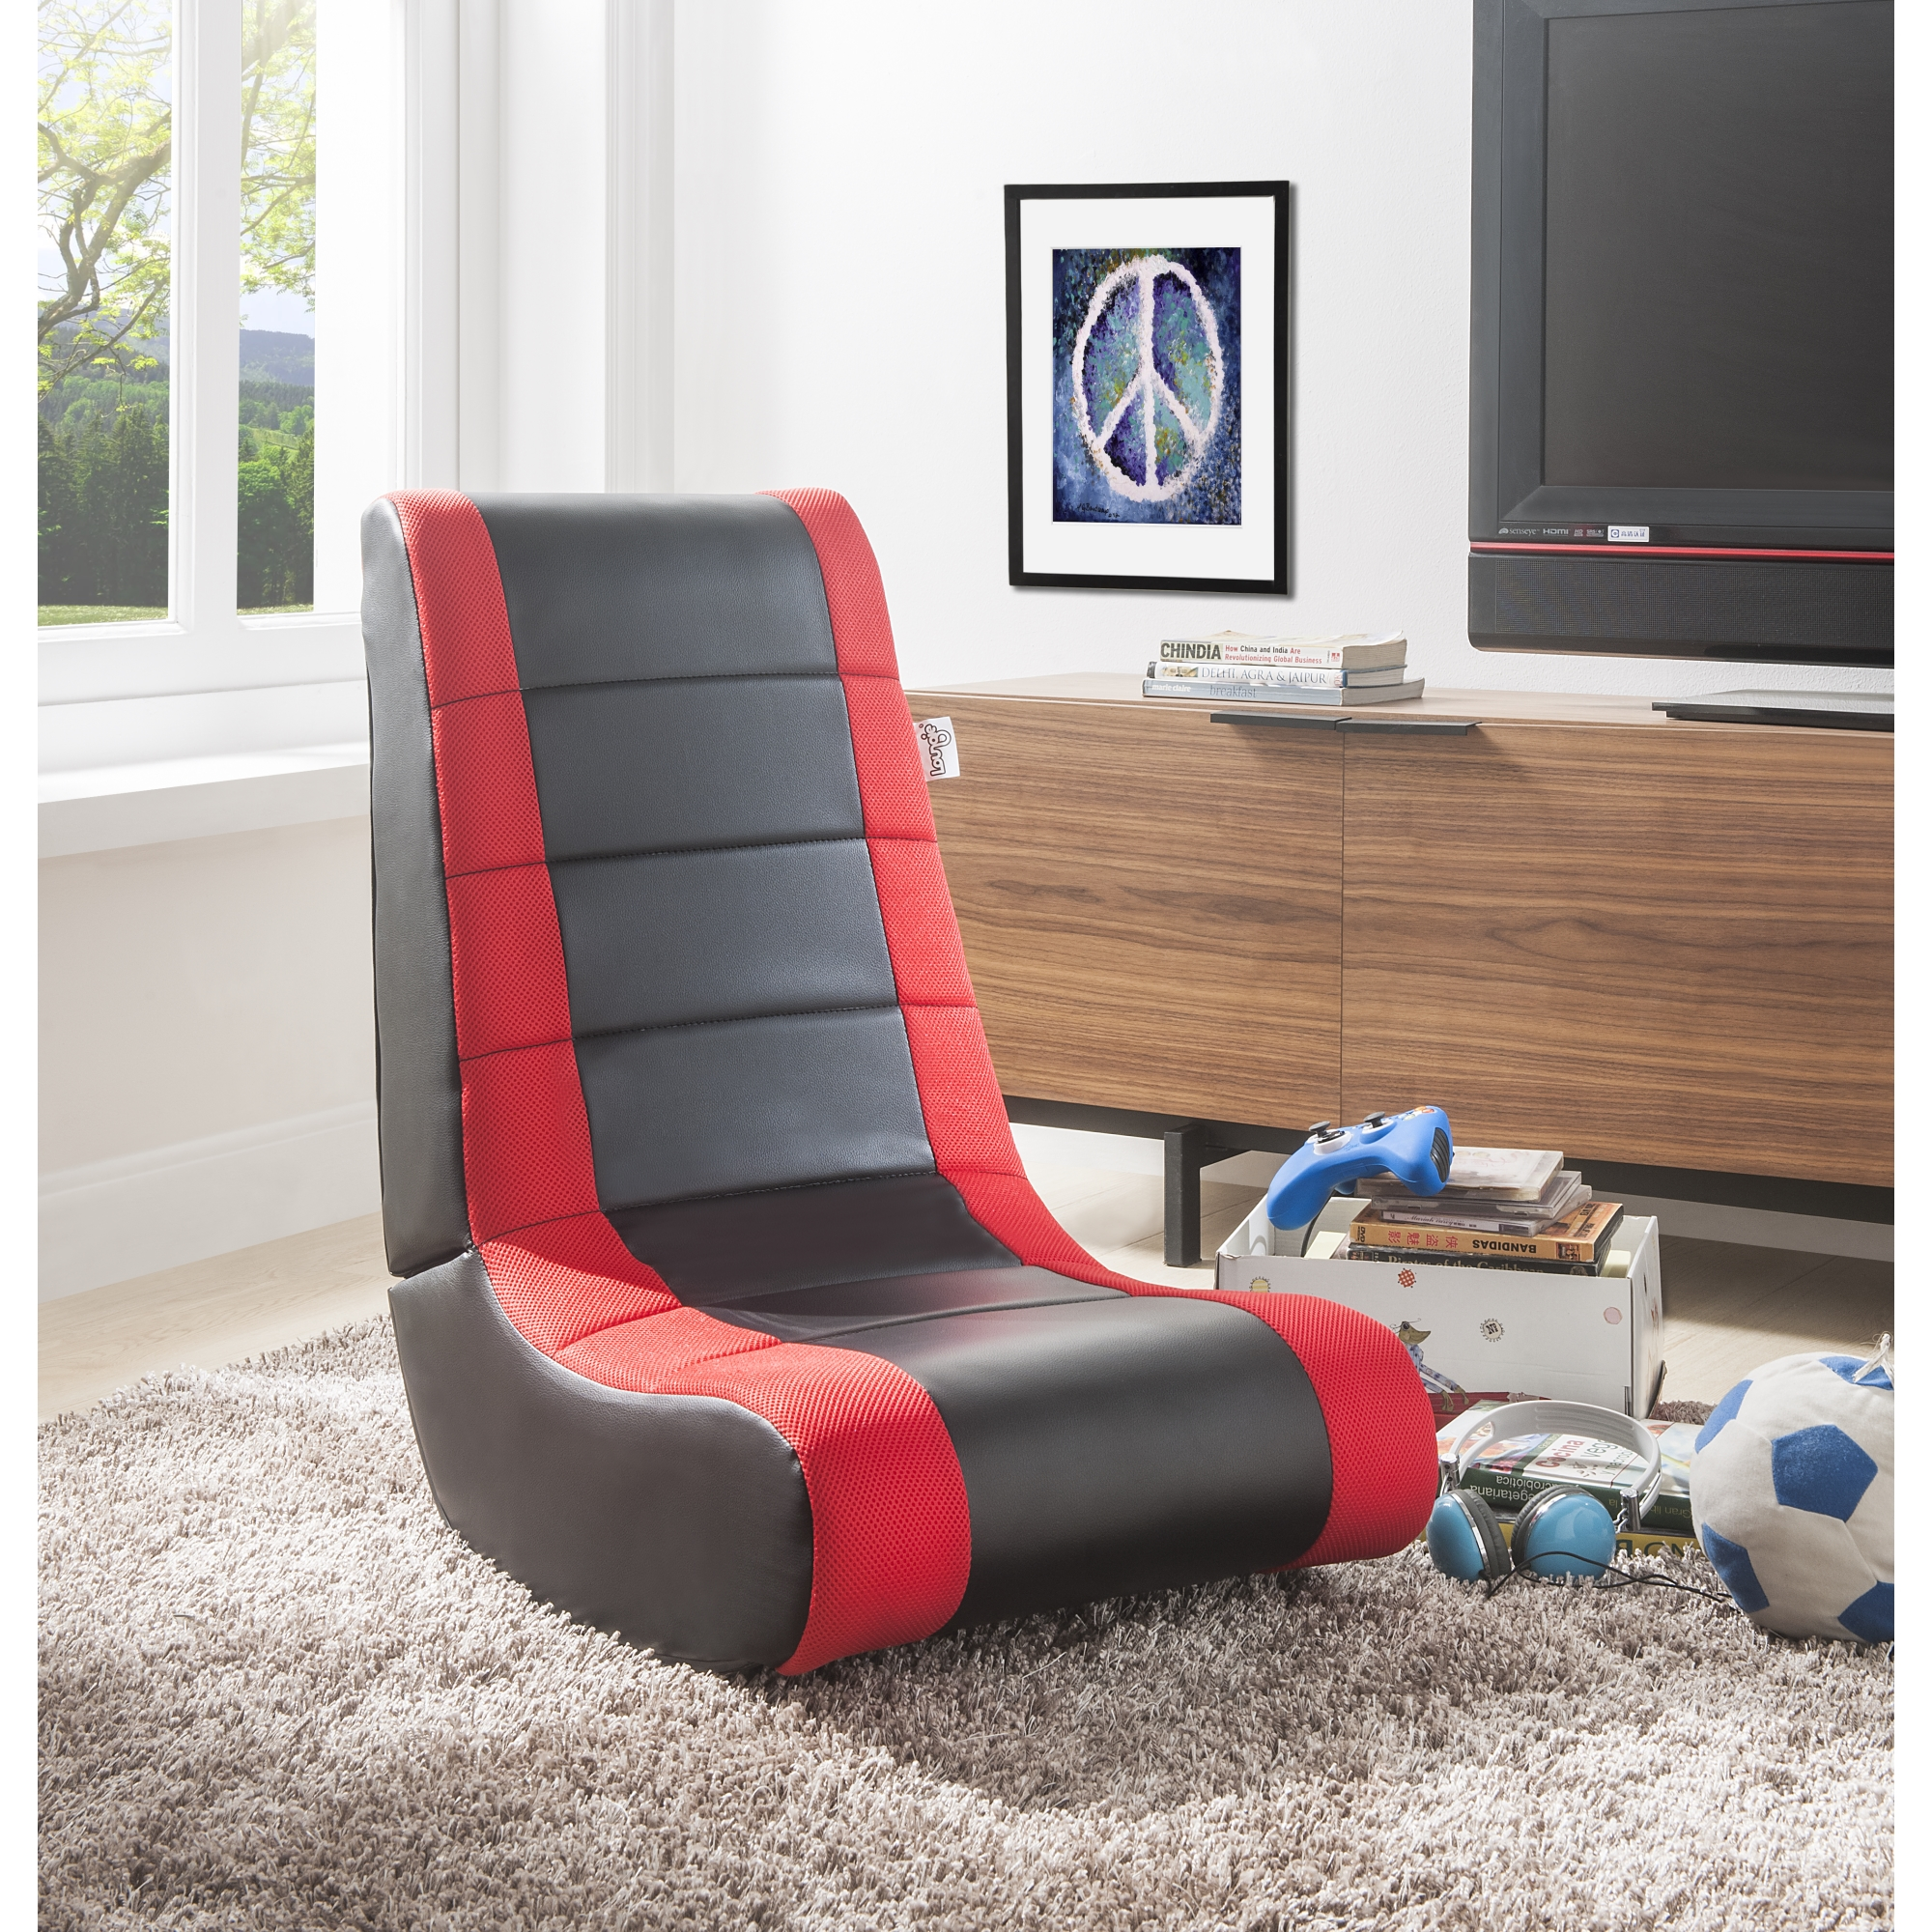 Loungie Black/Red PU Leather Chair For Kids, Teens, Adults, Boys Or Girls